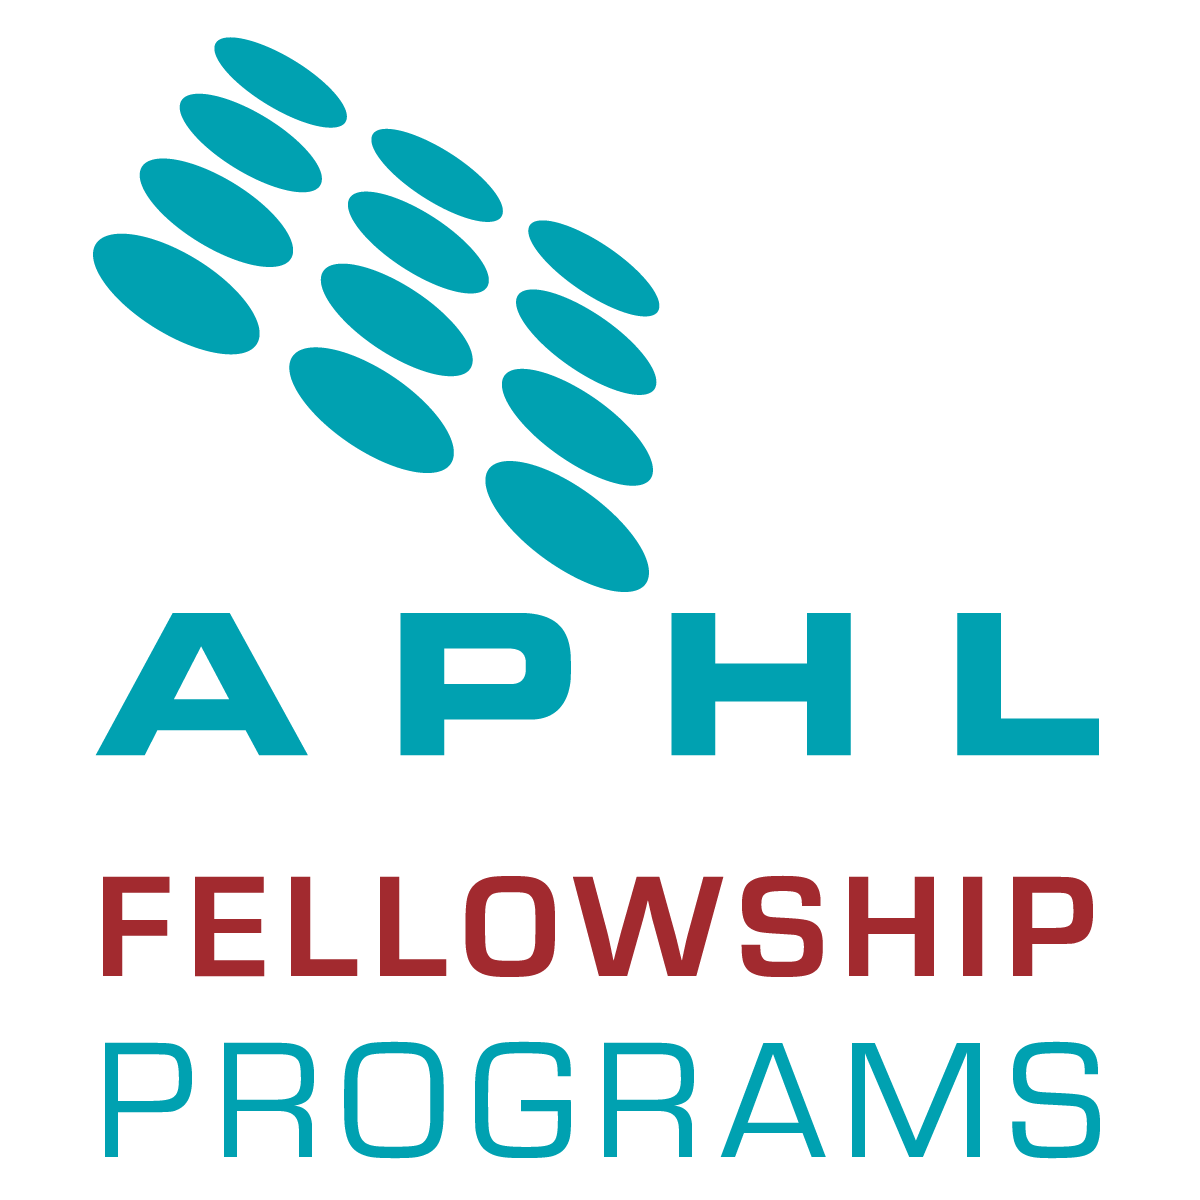 APHL-CDC Fellowship Programs Logo